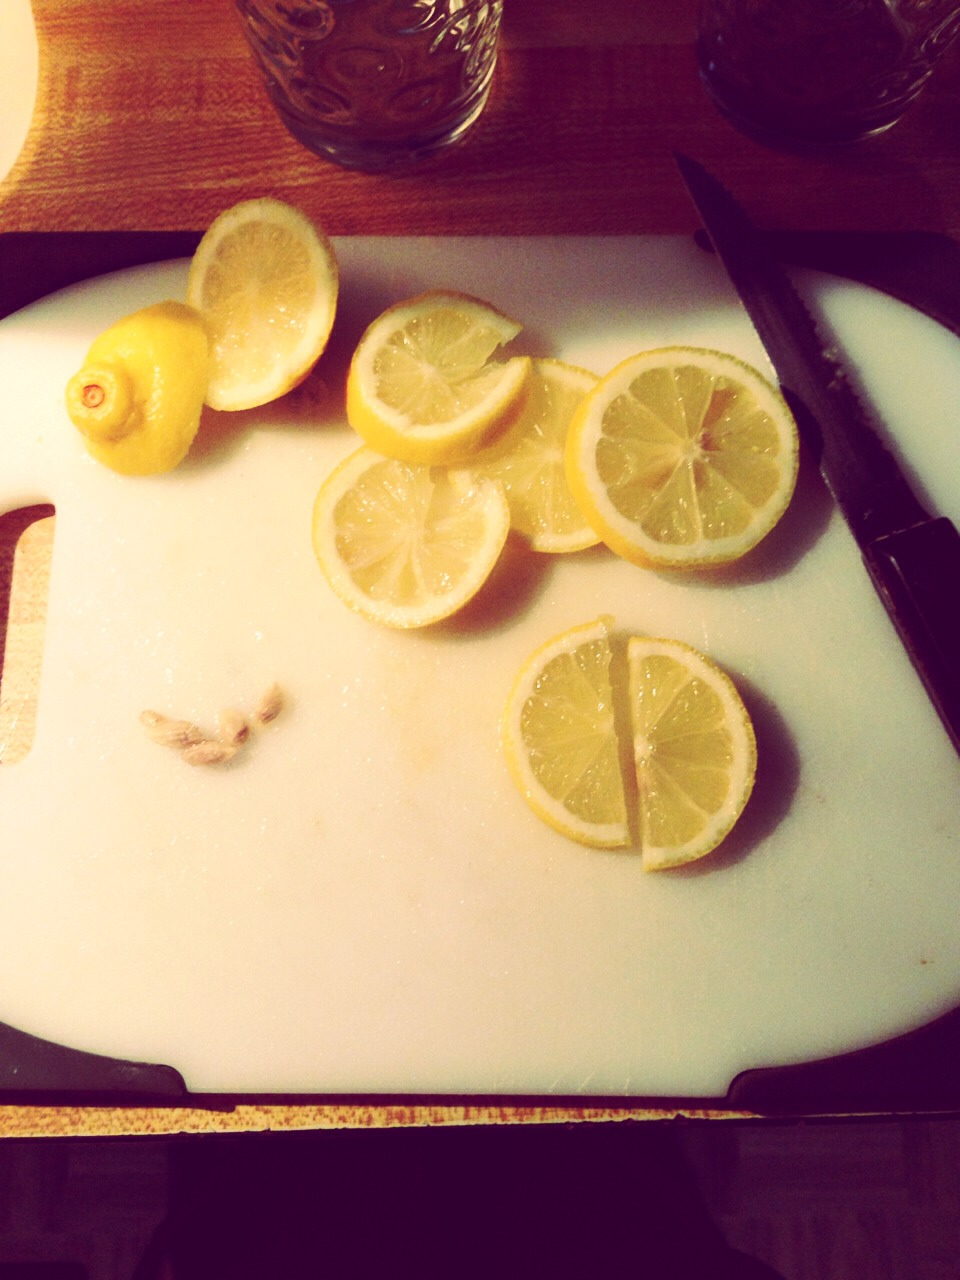 Cut the Leominster in little sections and take out the seeds  Take one lemon and cut it in half